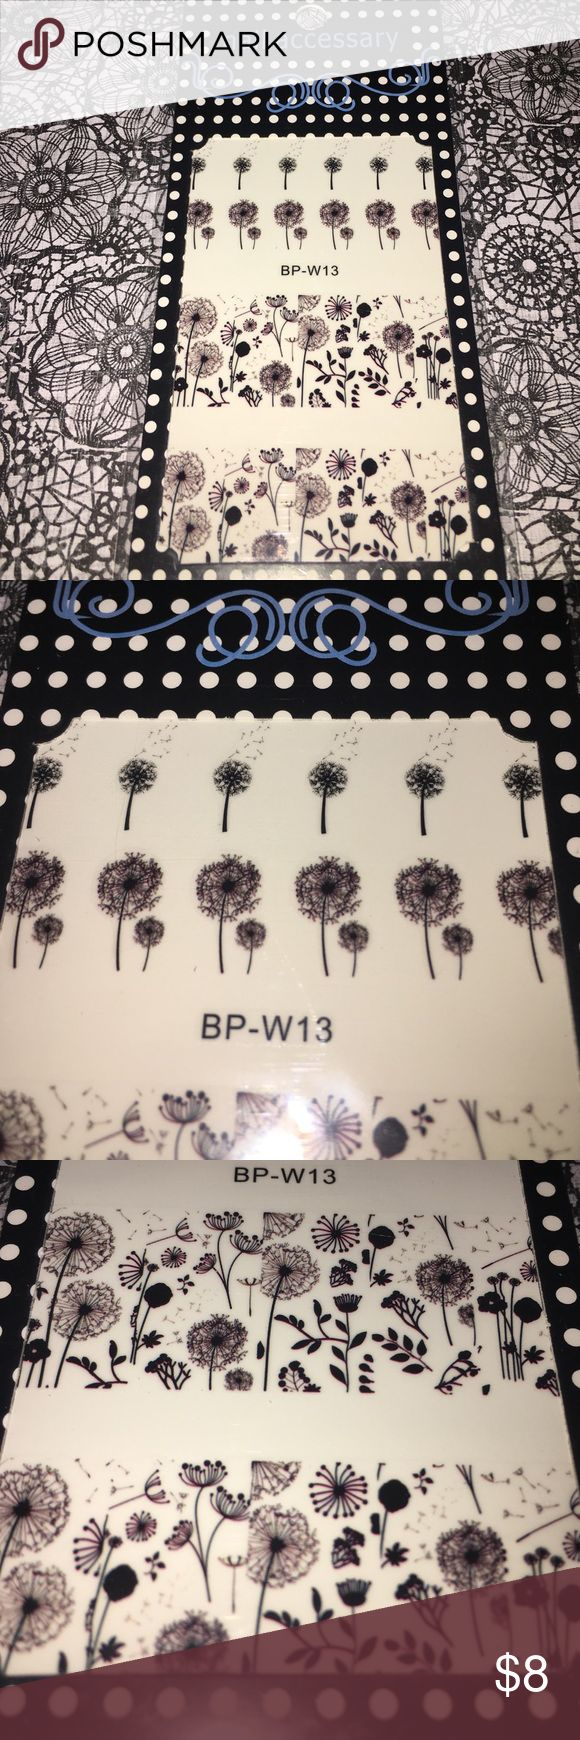 Brand new floral nail decals for manicures Manicure or pedicure nail decals Makeup